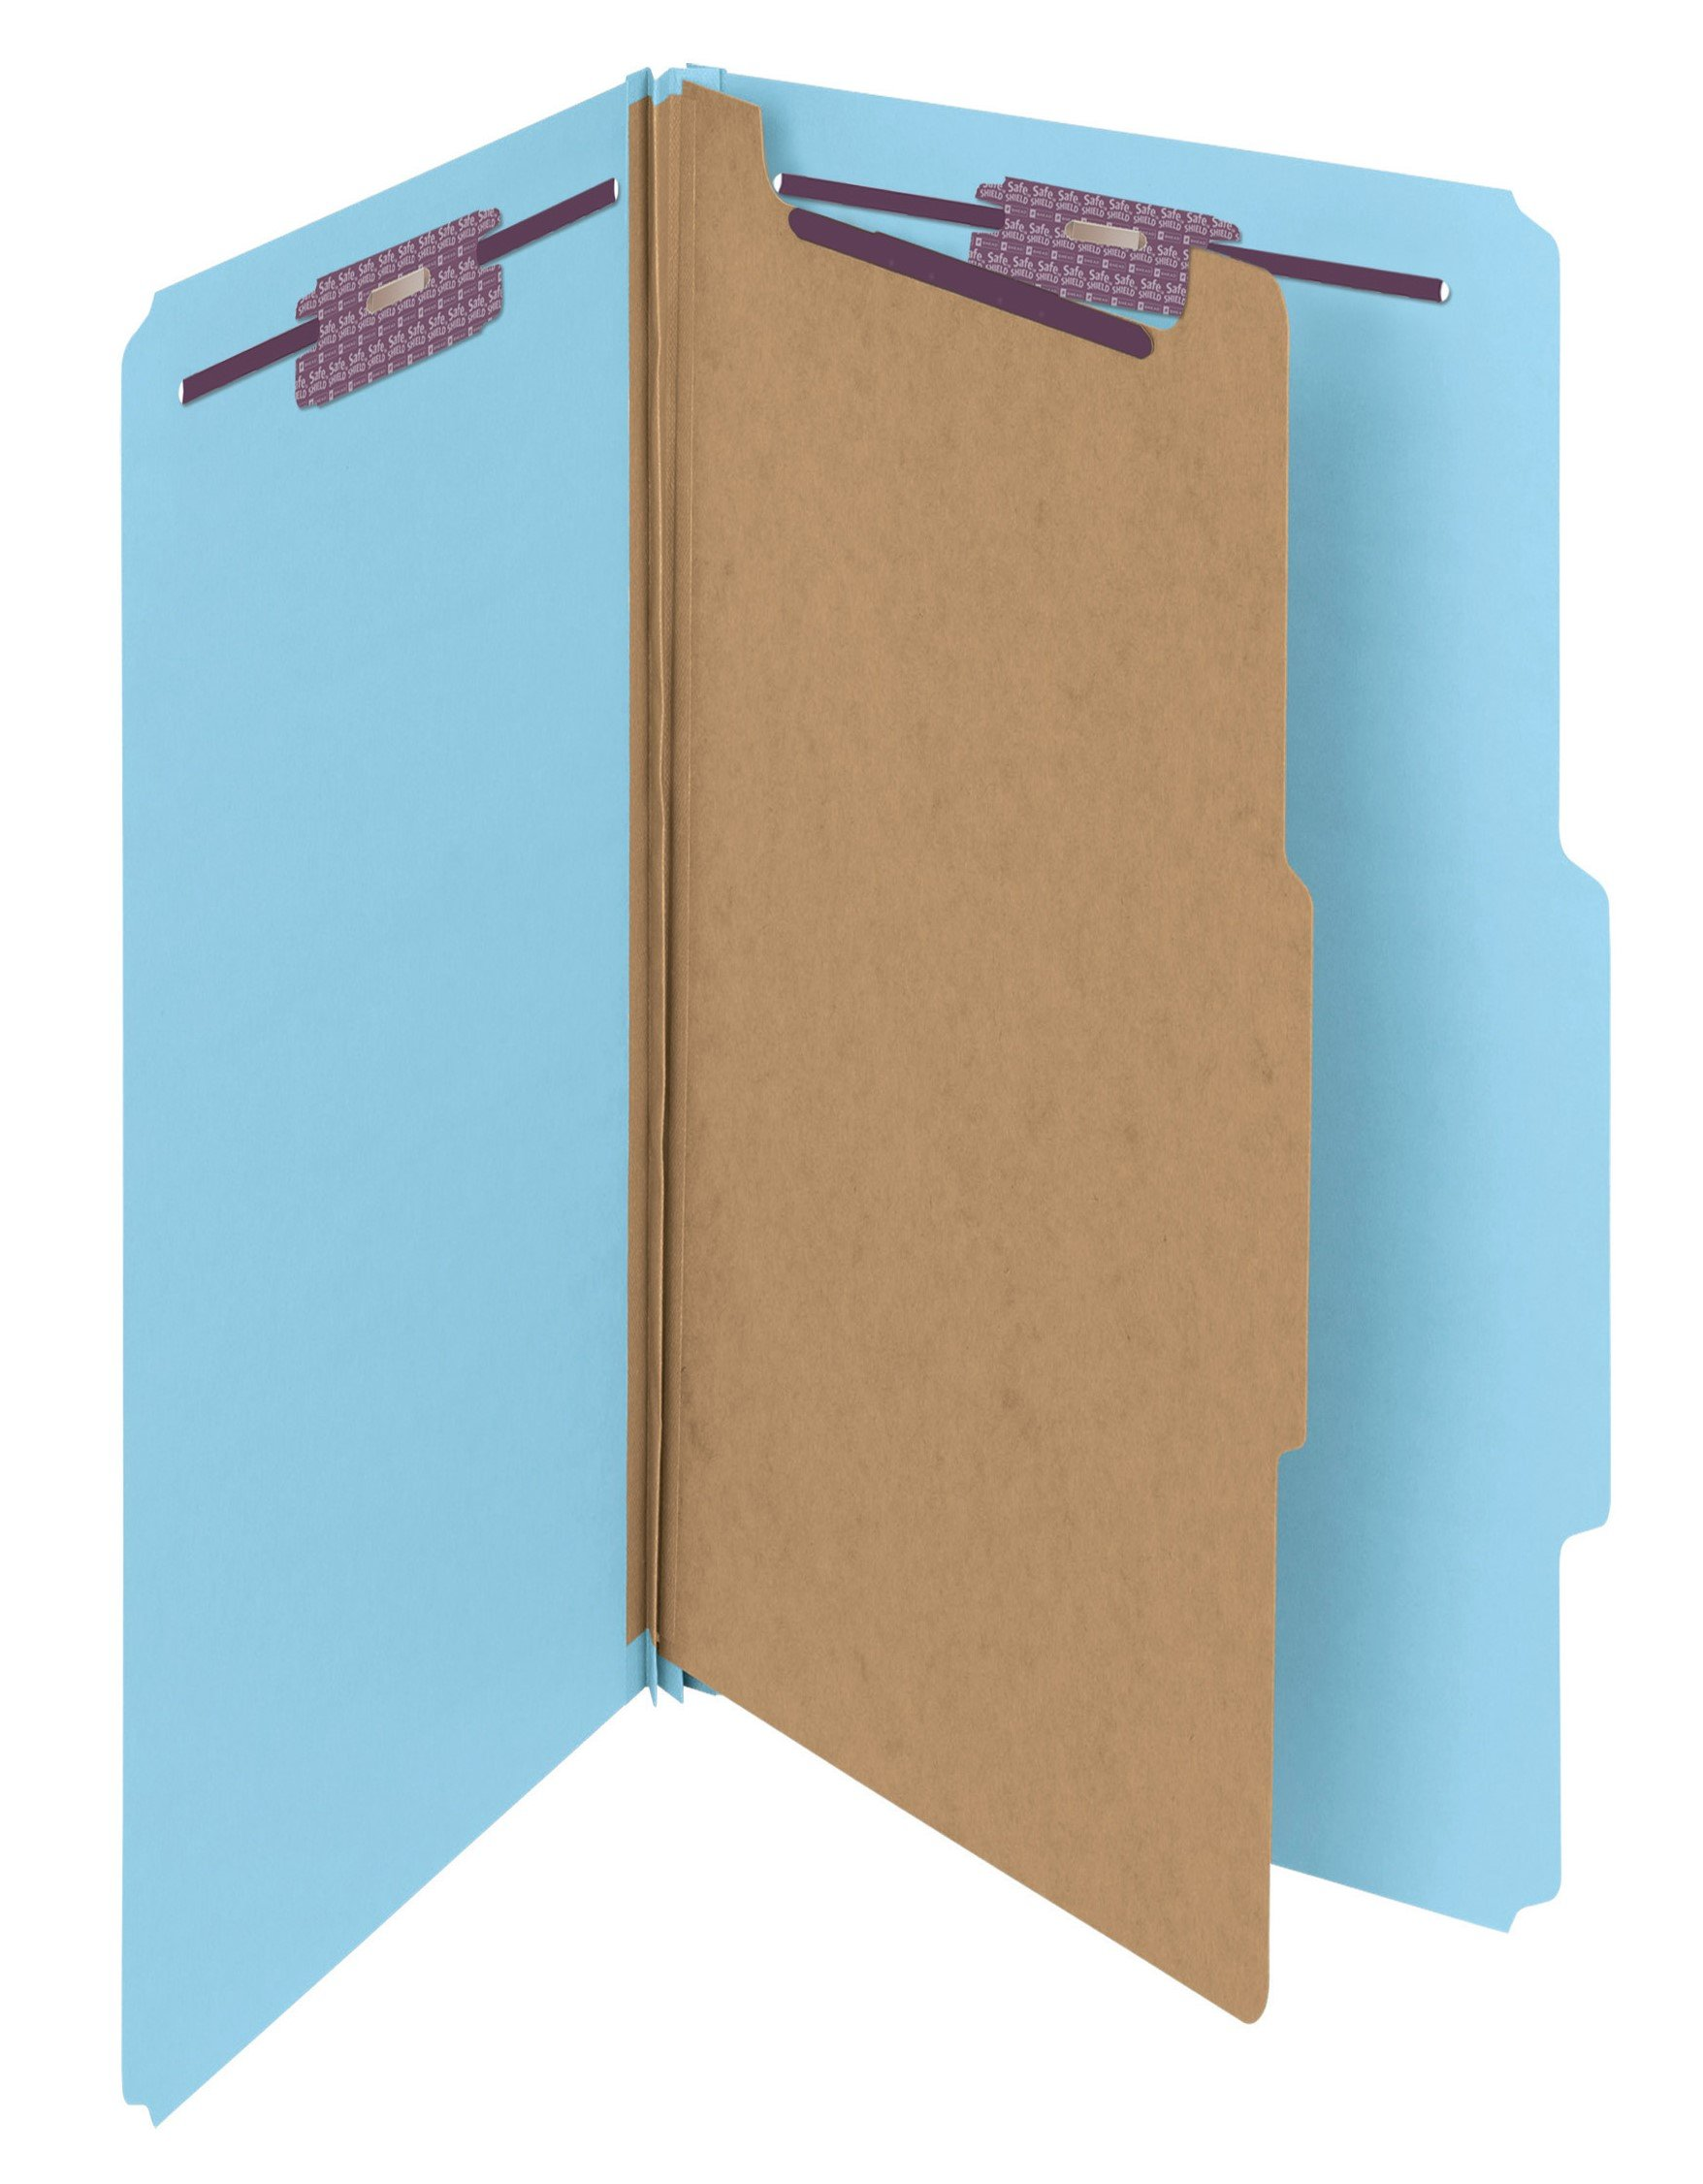 Smead Pressboard Classification File Folder with SafeSHIELD Fasteners, 1 Divider, 2'' Expansion, Legal Size, Blue, 10 per Box (18730)